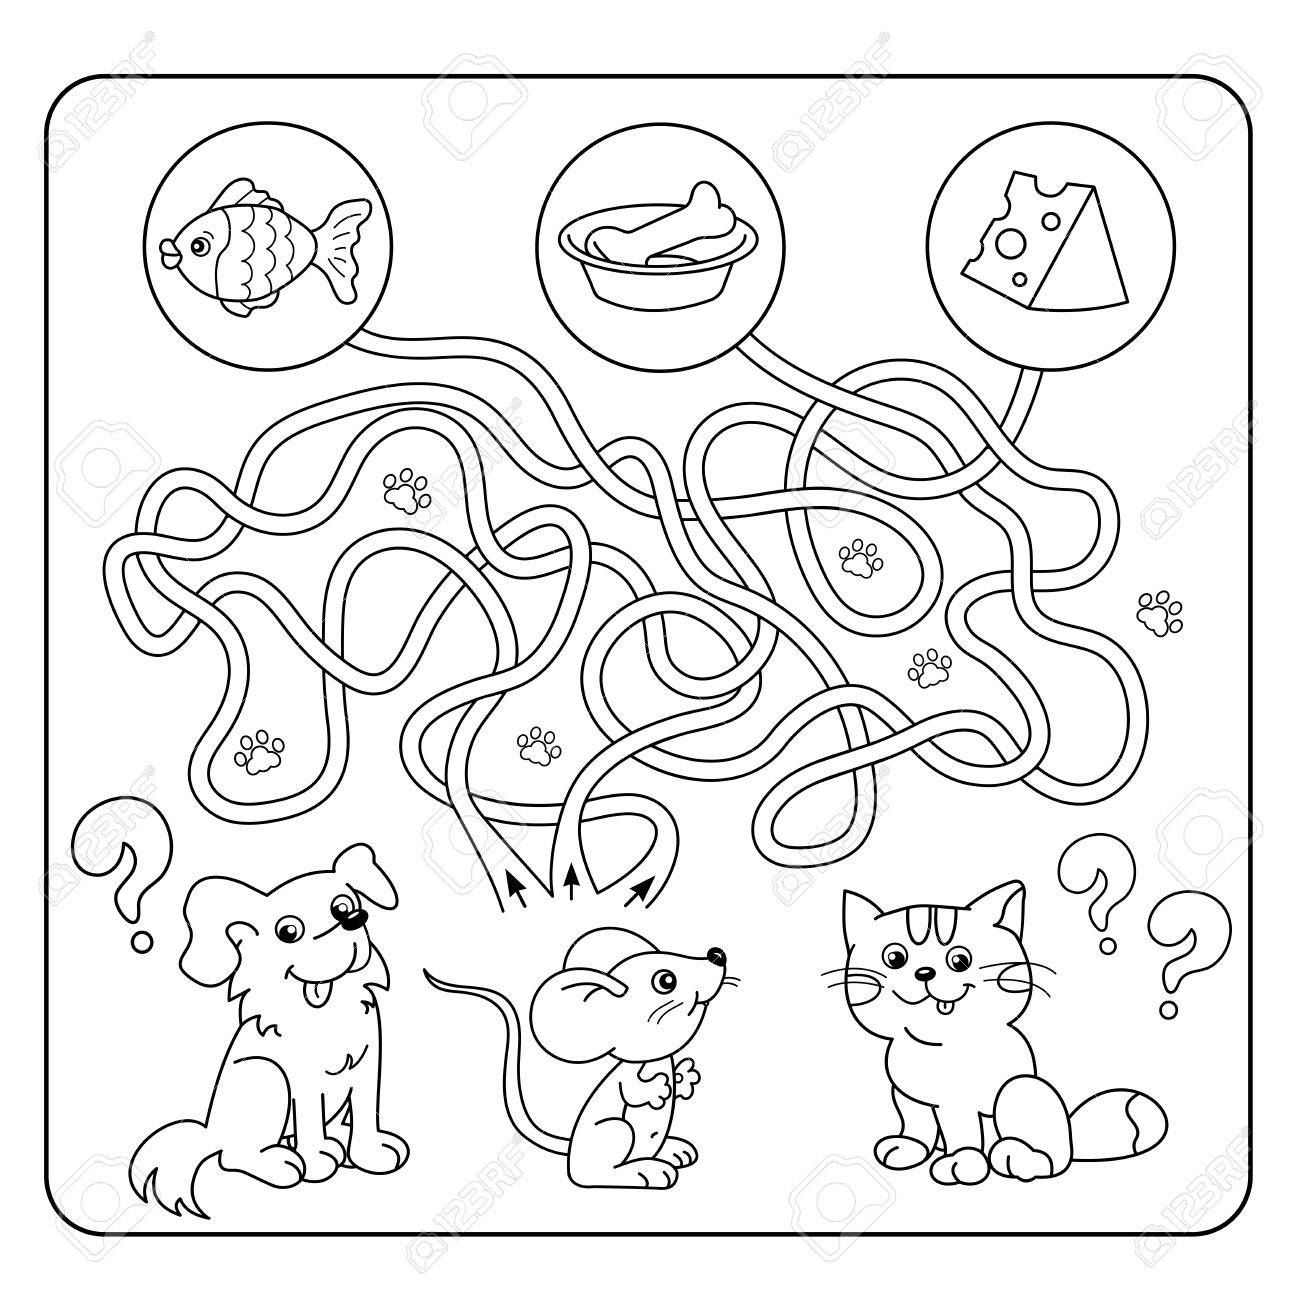 Maze Or Labyrinth Game For Preschool Children. Puzzle. Tangled ...